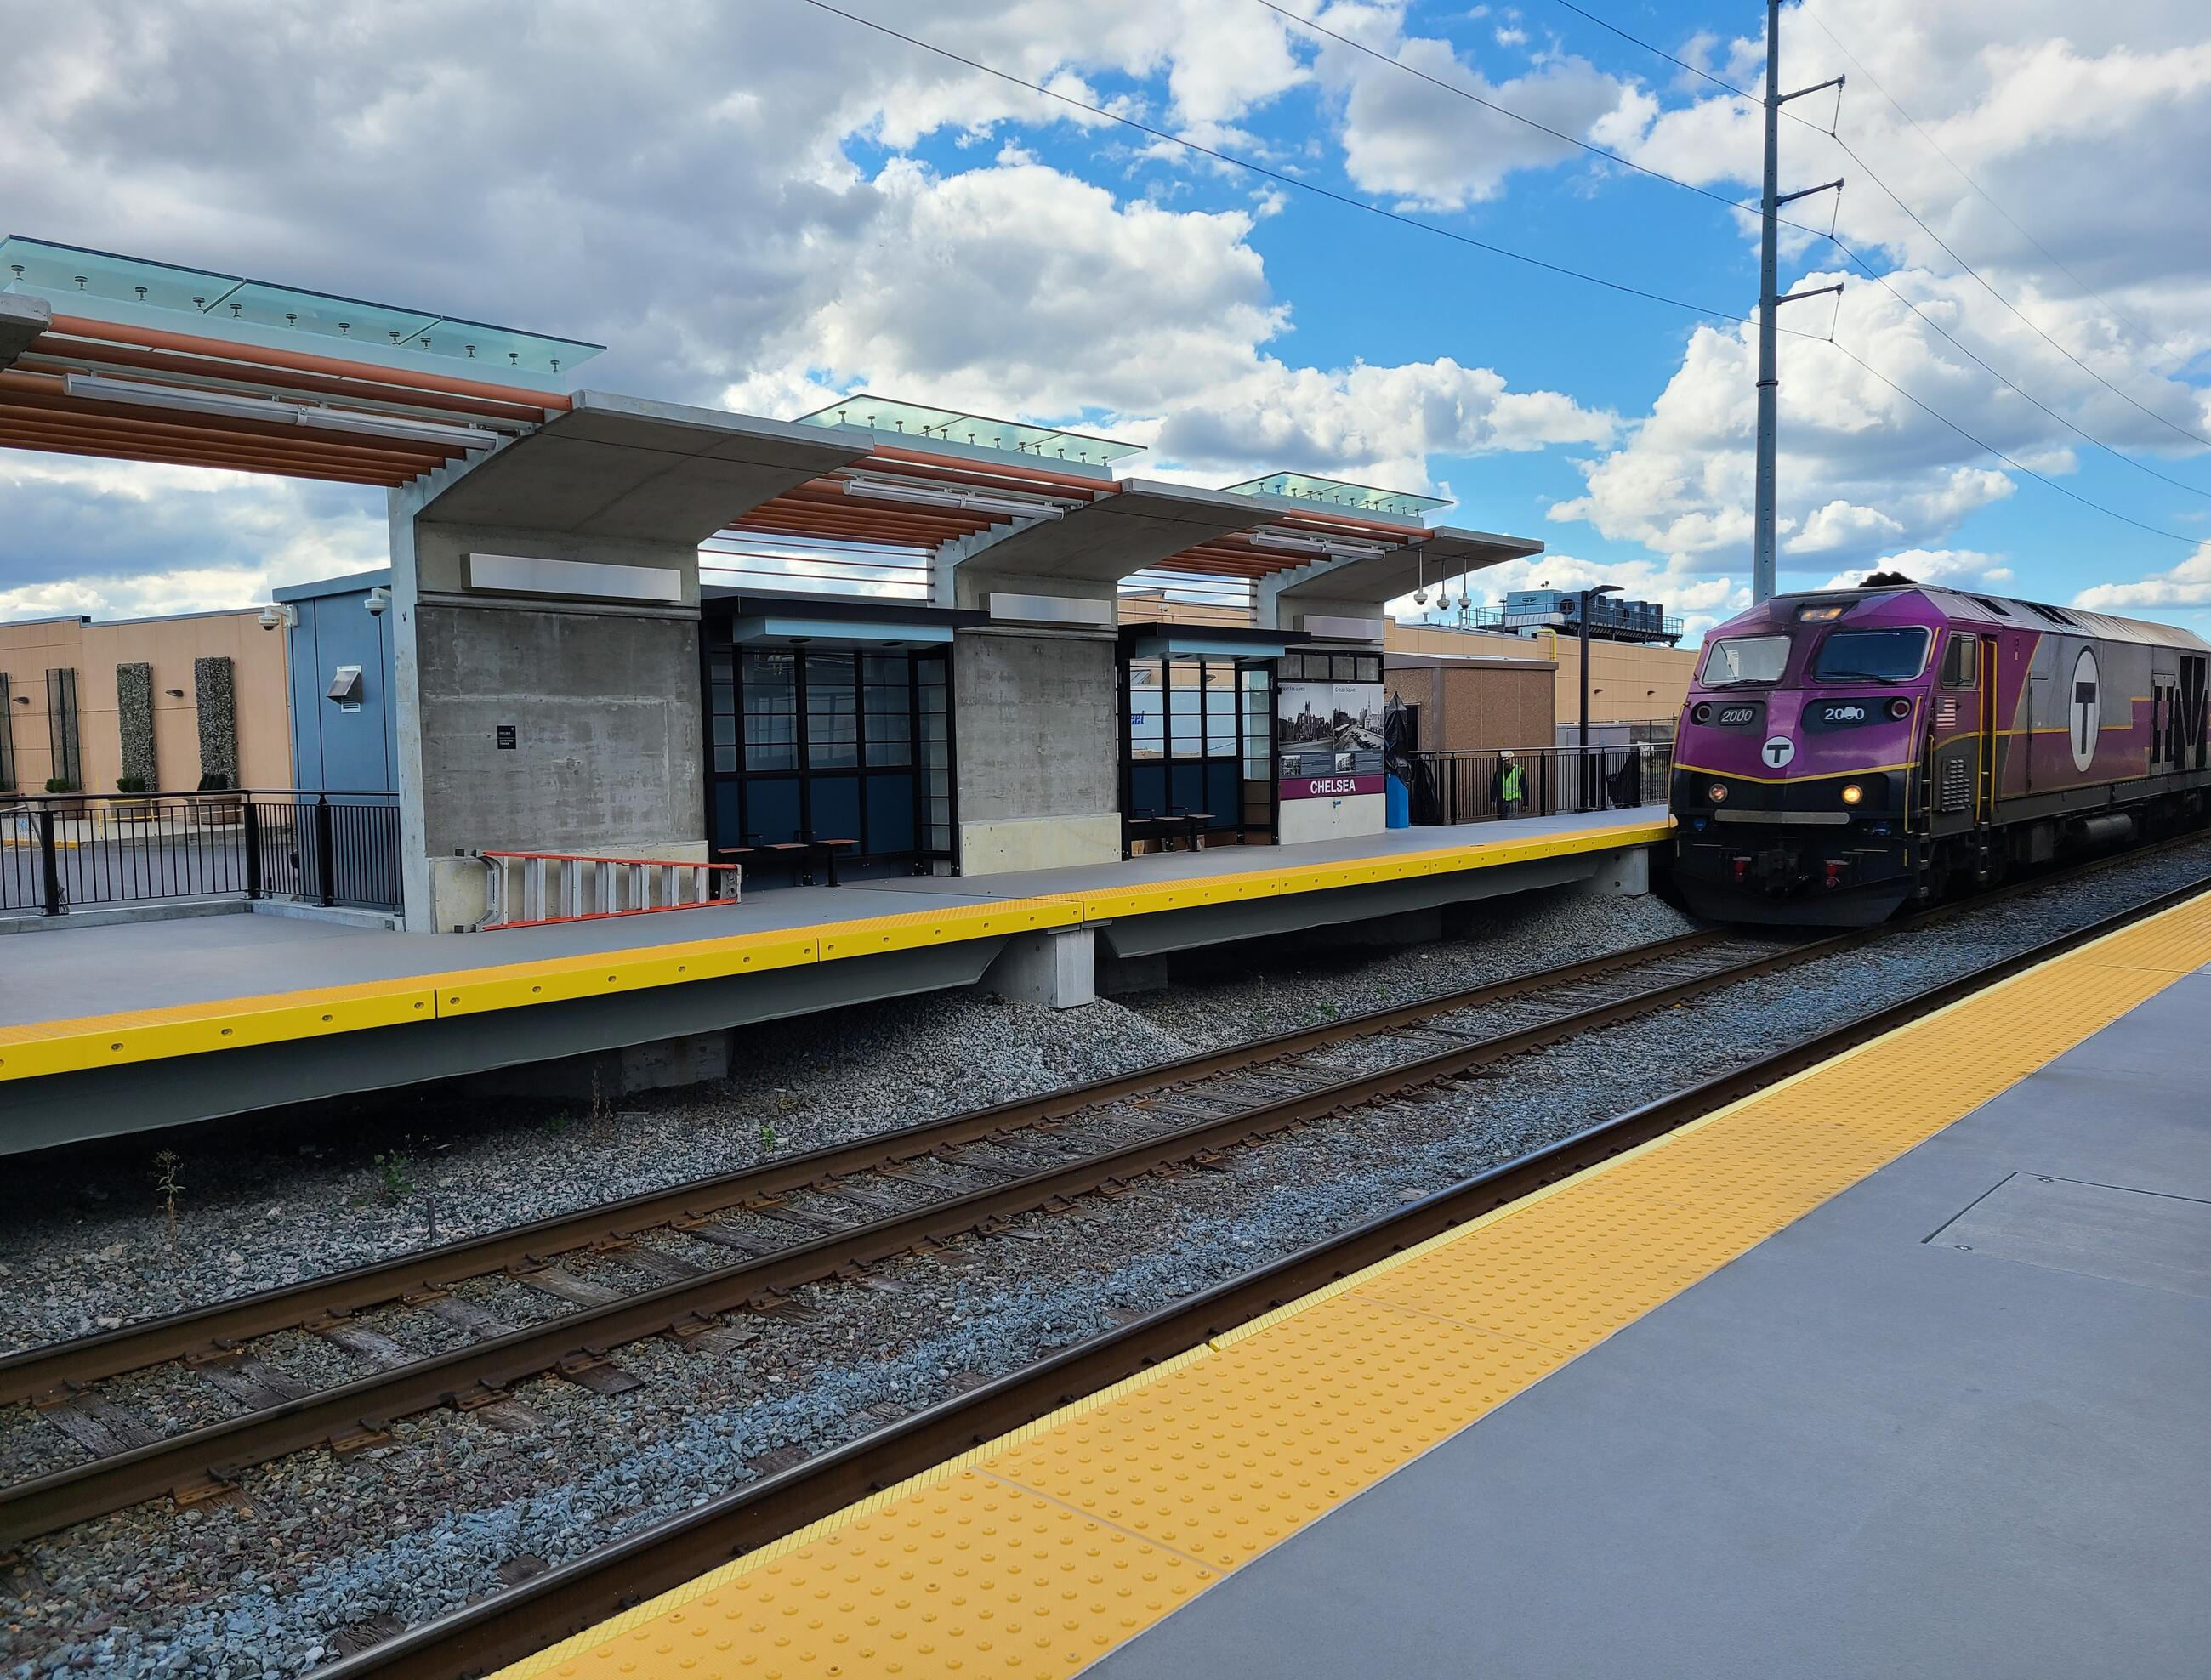 A purple Commuter Rail train is shown at right next to the new station platform. The track runs diagonally from lower left to center right, with the inbound platform at lower right and the outbound platform at upper left. The platform has lighted canopies hanging over outdoor stools in recessed seating areas. A blue sky with white clouds is overhead at upper right.